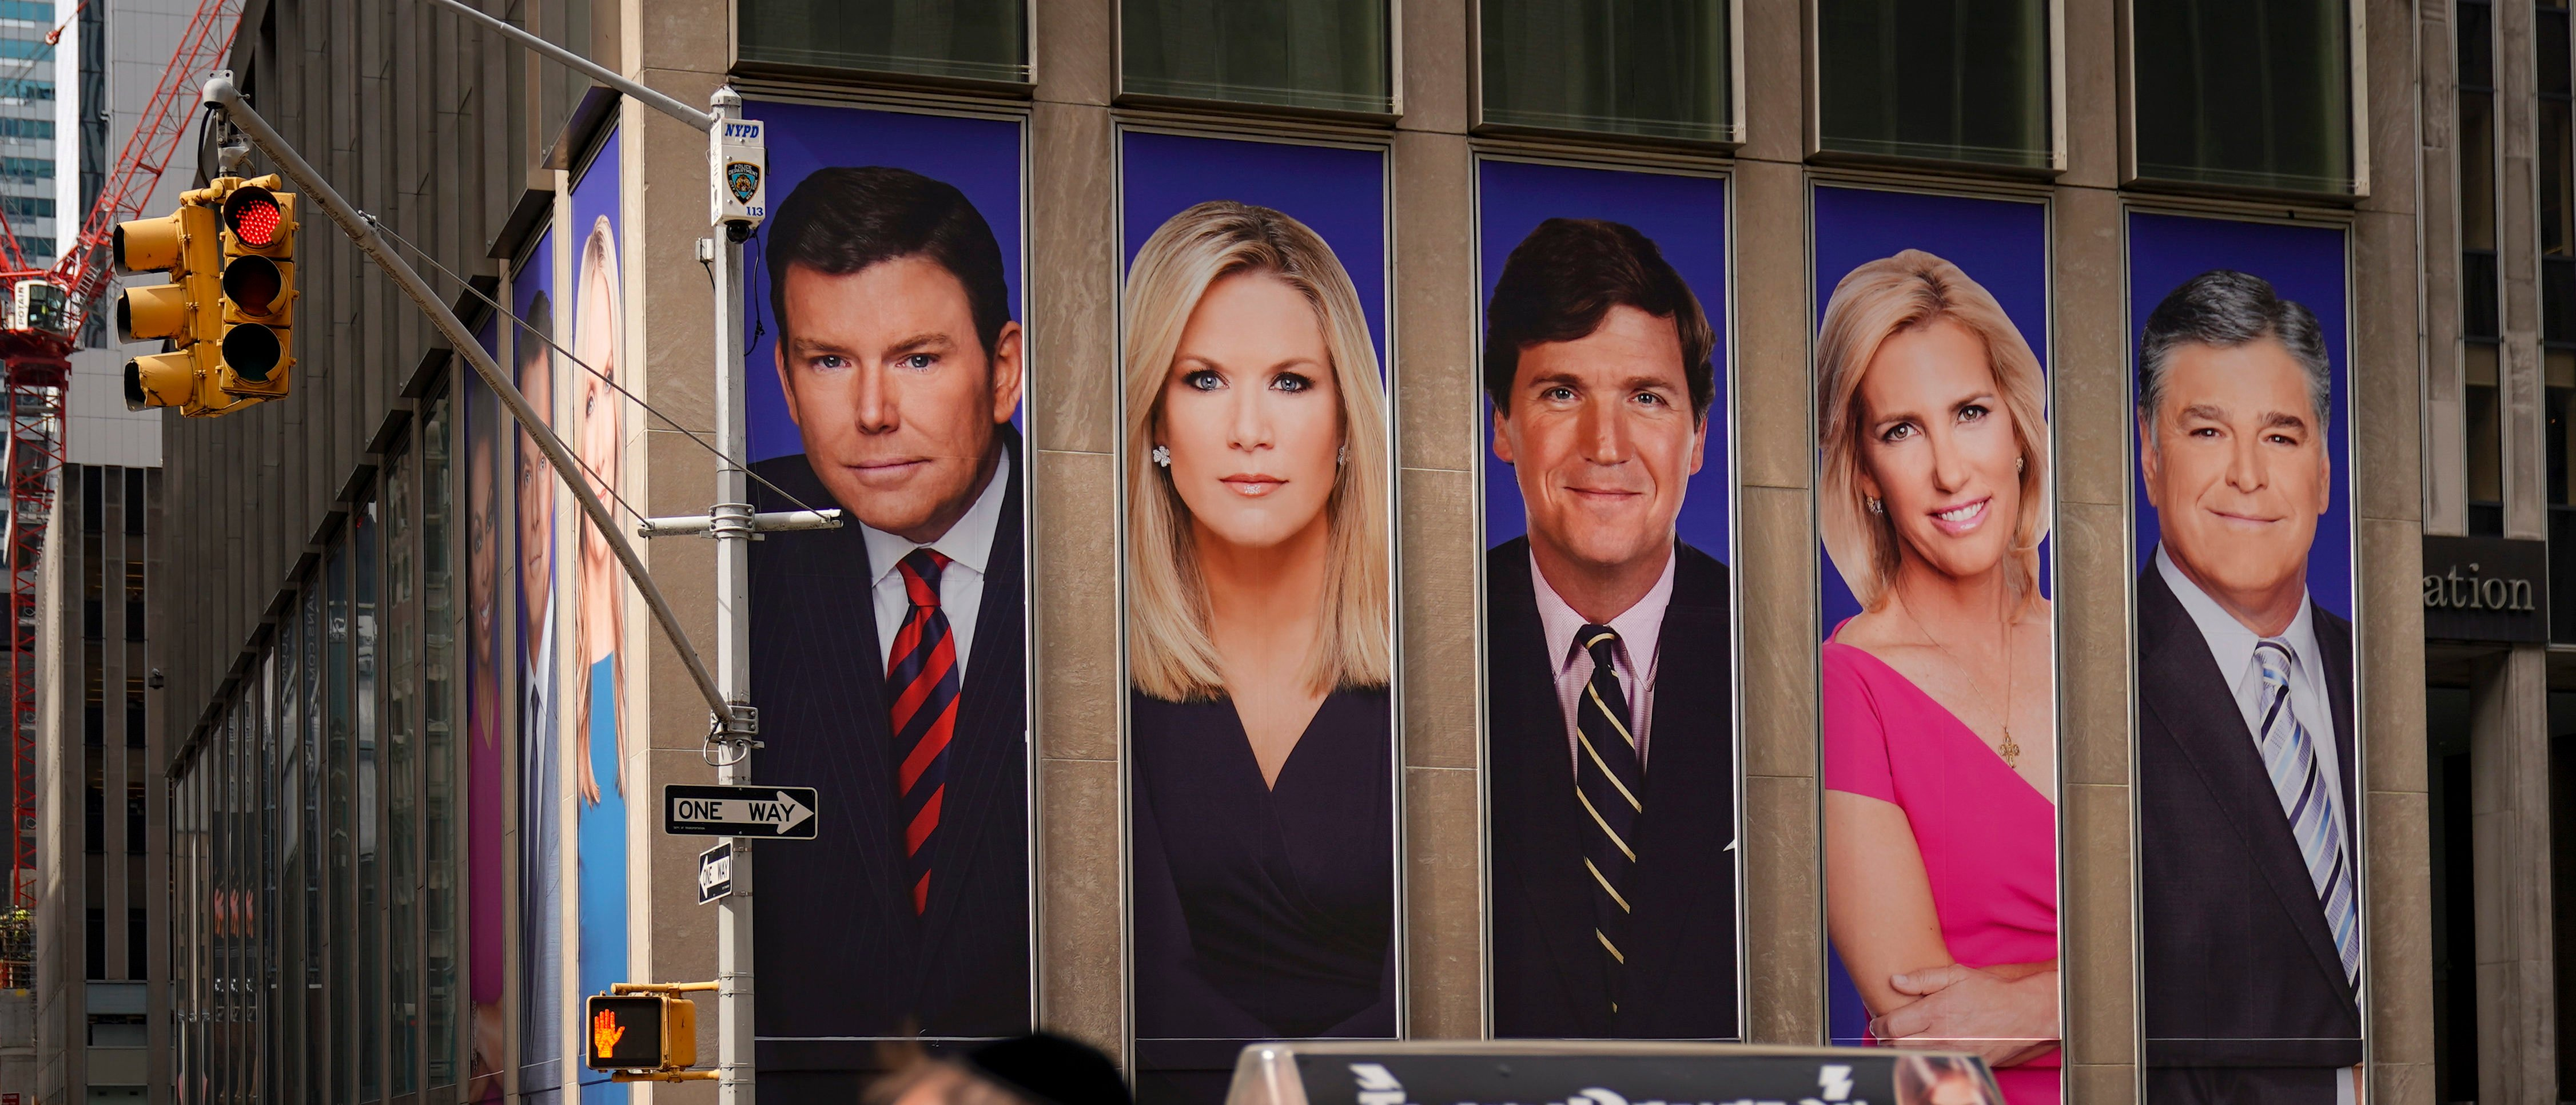 Traffic on Sixth Avenue passes by advertisements featuring Fox News personalities, including Bret Baier, Martha MacCallum, Tucker Carlson, Laura Ingraham, and Sean Hannity, adorn the front of the News Corporation building, March 13, 2019 in New York City. (Drew Angerer/Getty Images)